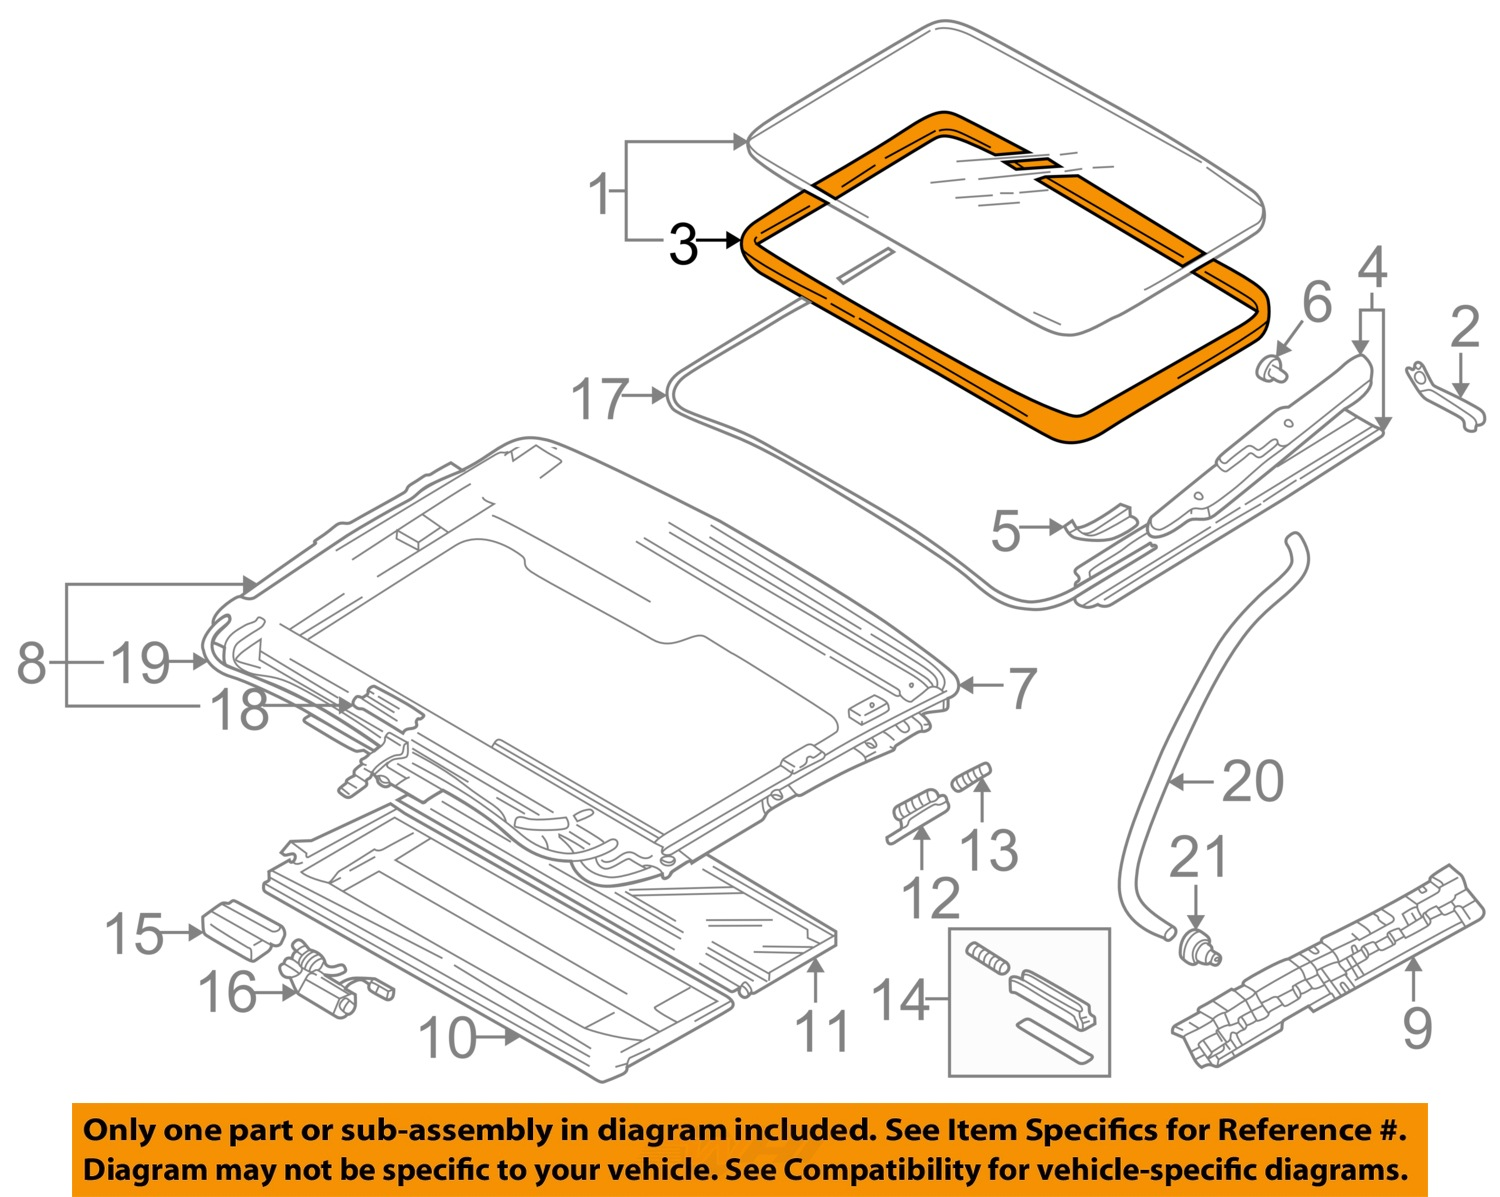 2003 mitsubishi eclipse sunroof pictures to pin on